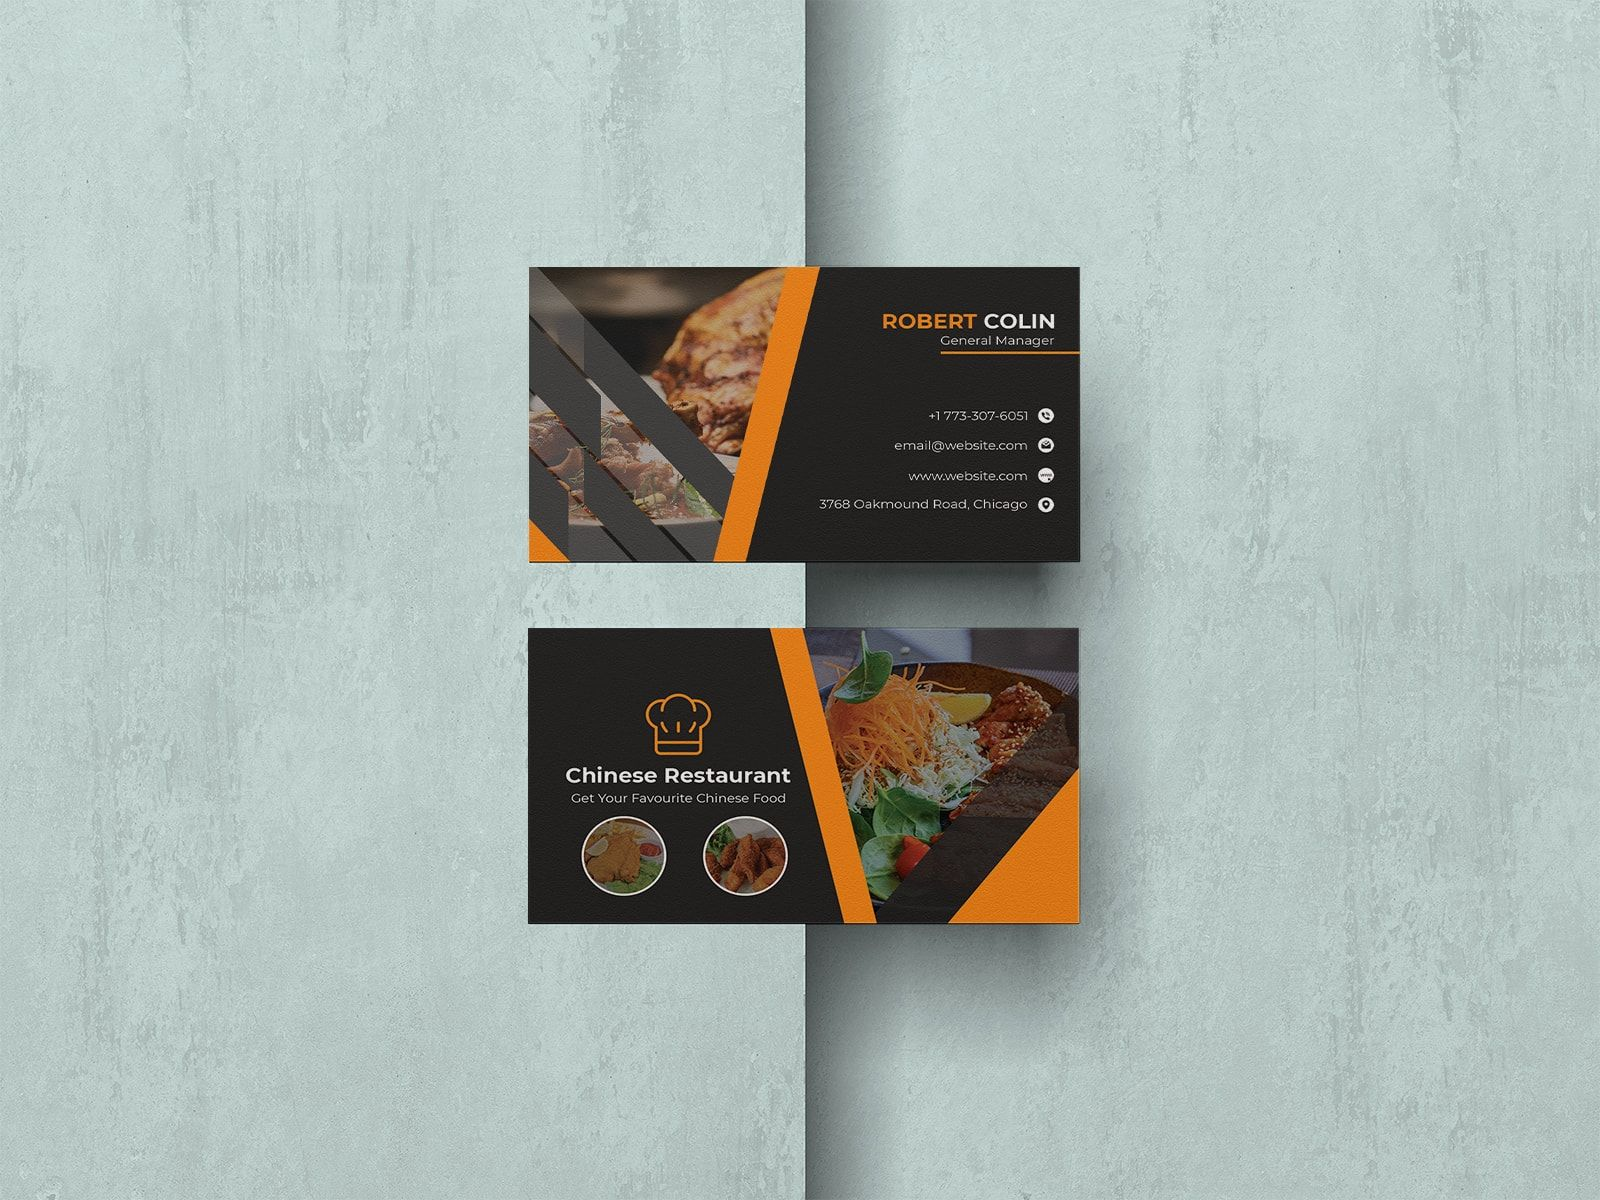 Chinese Restaurant Business Card Restaurant Business Cards Restaurant Card Design Business Cards Collection